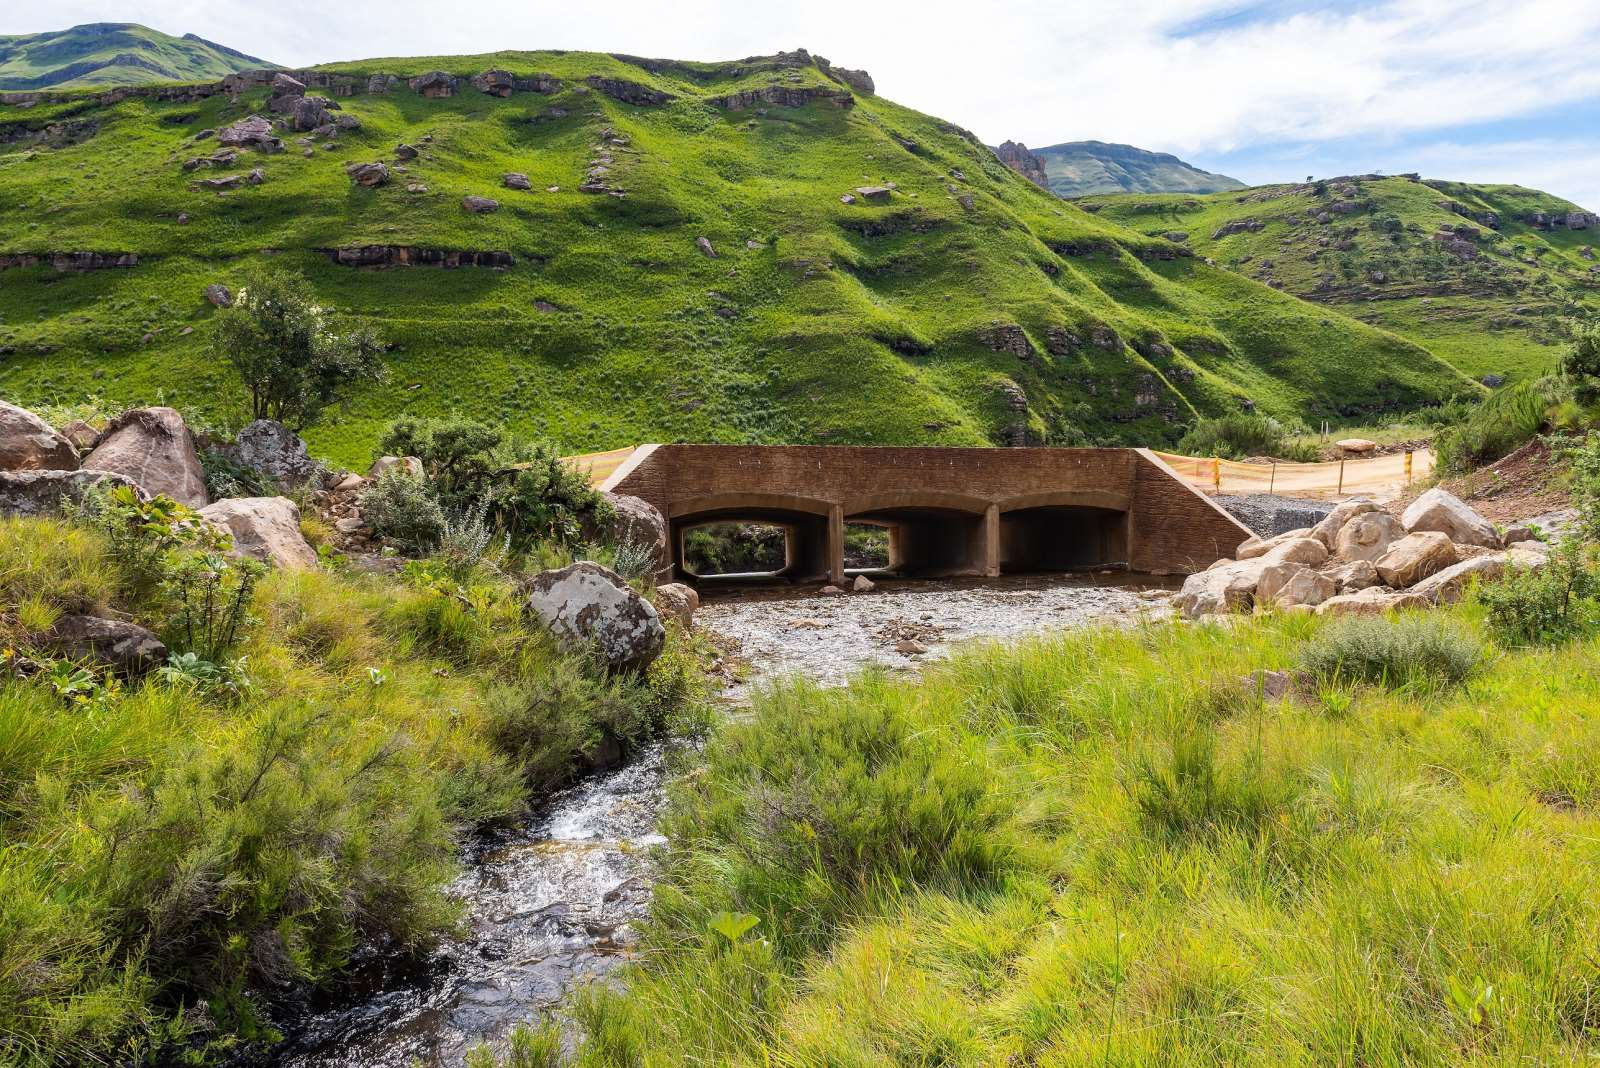 Sani Pass: the road link between KwaZulu-Natal and Lesotho, South Africa